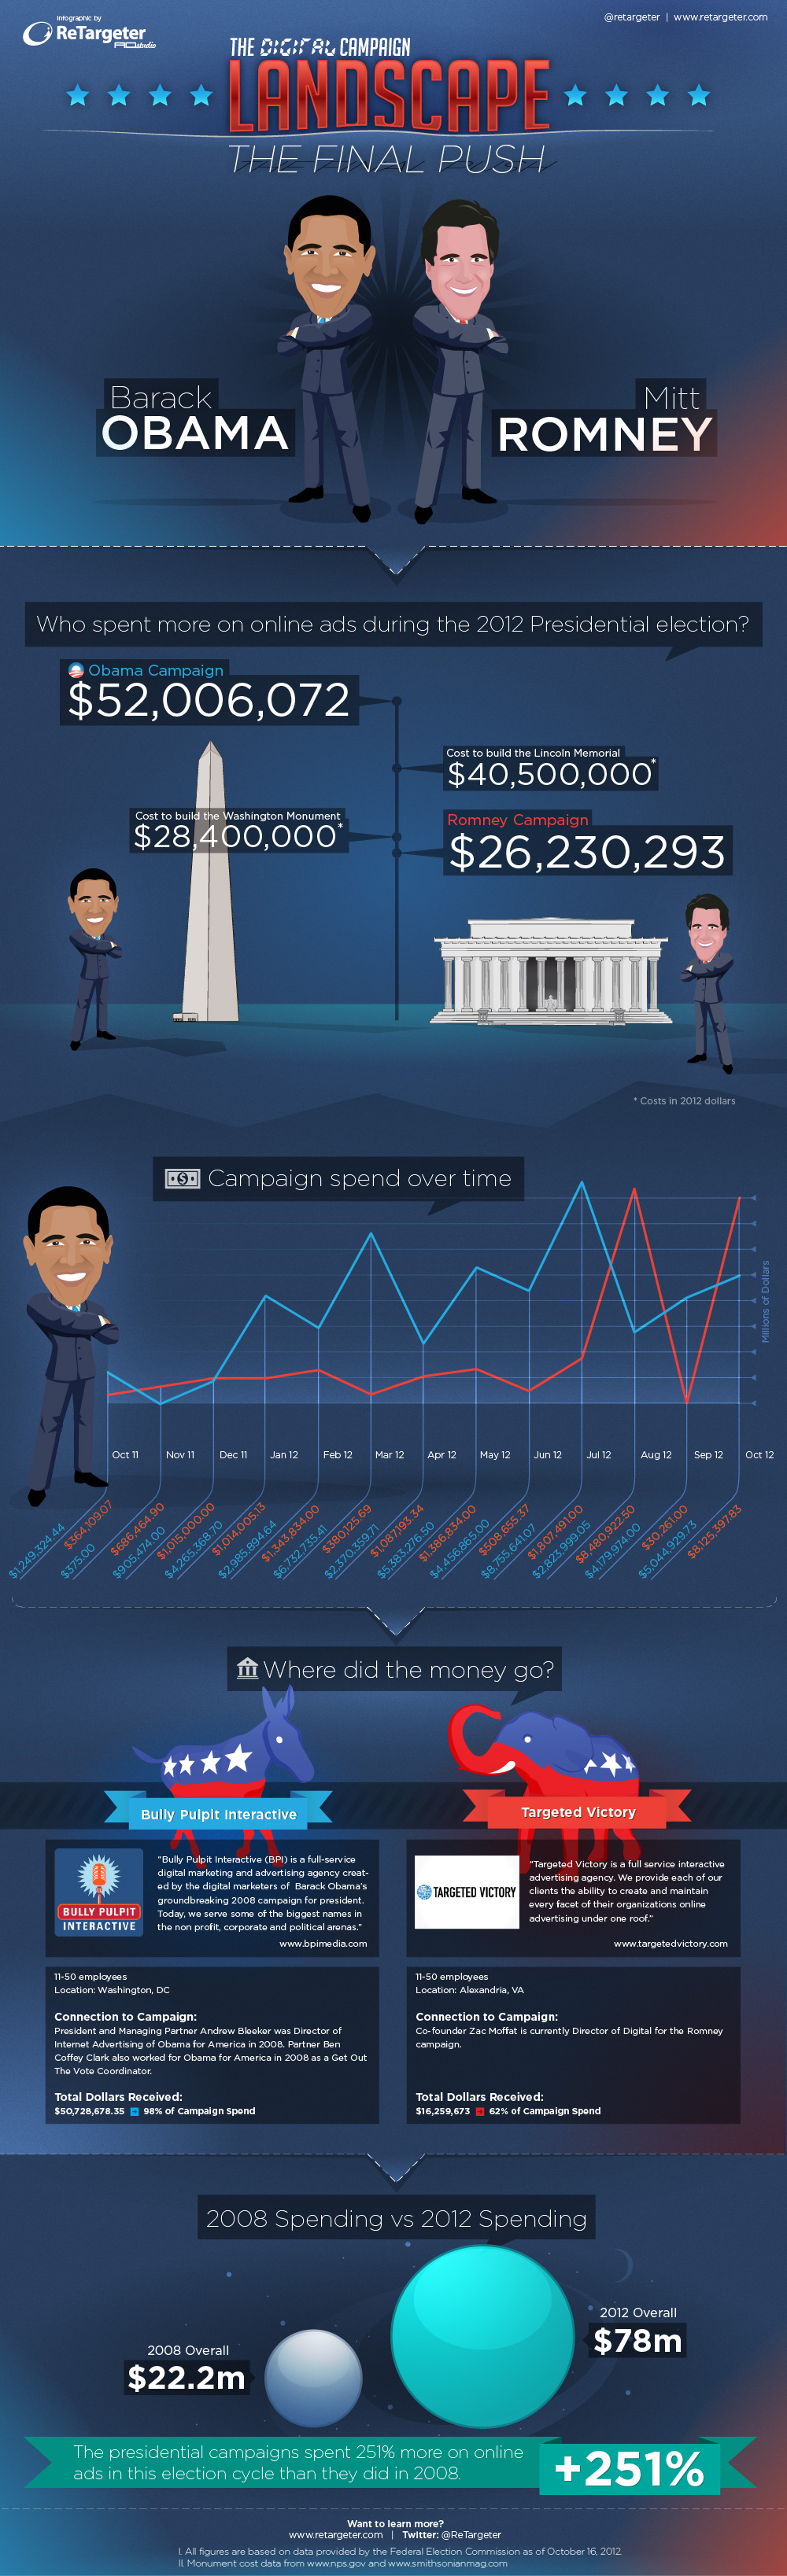 Digital_Campaign_FInal_Push_Infographic_Nov2012.jpg